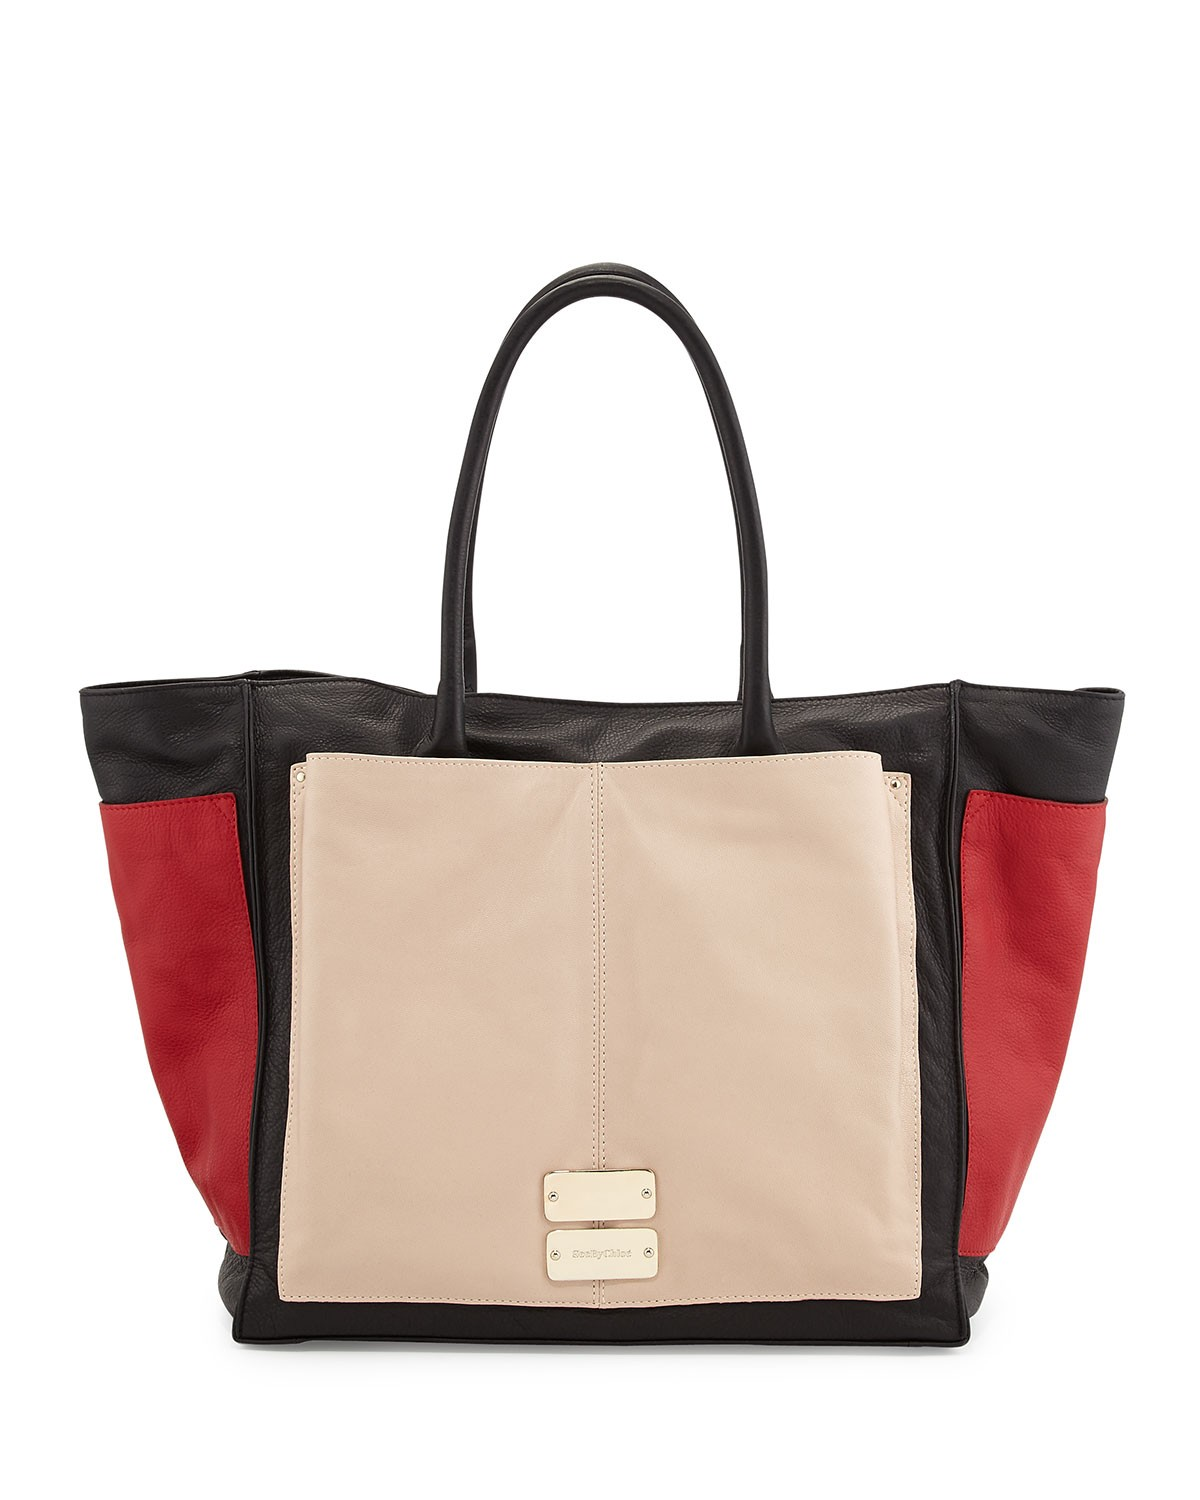 Nellie Large Colorblock Tote Bag, Black/Tango/Pearl - See by Chloe